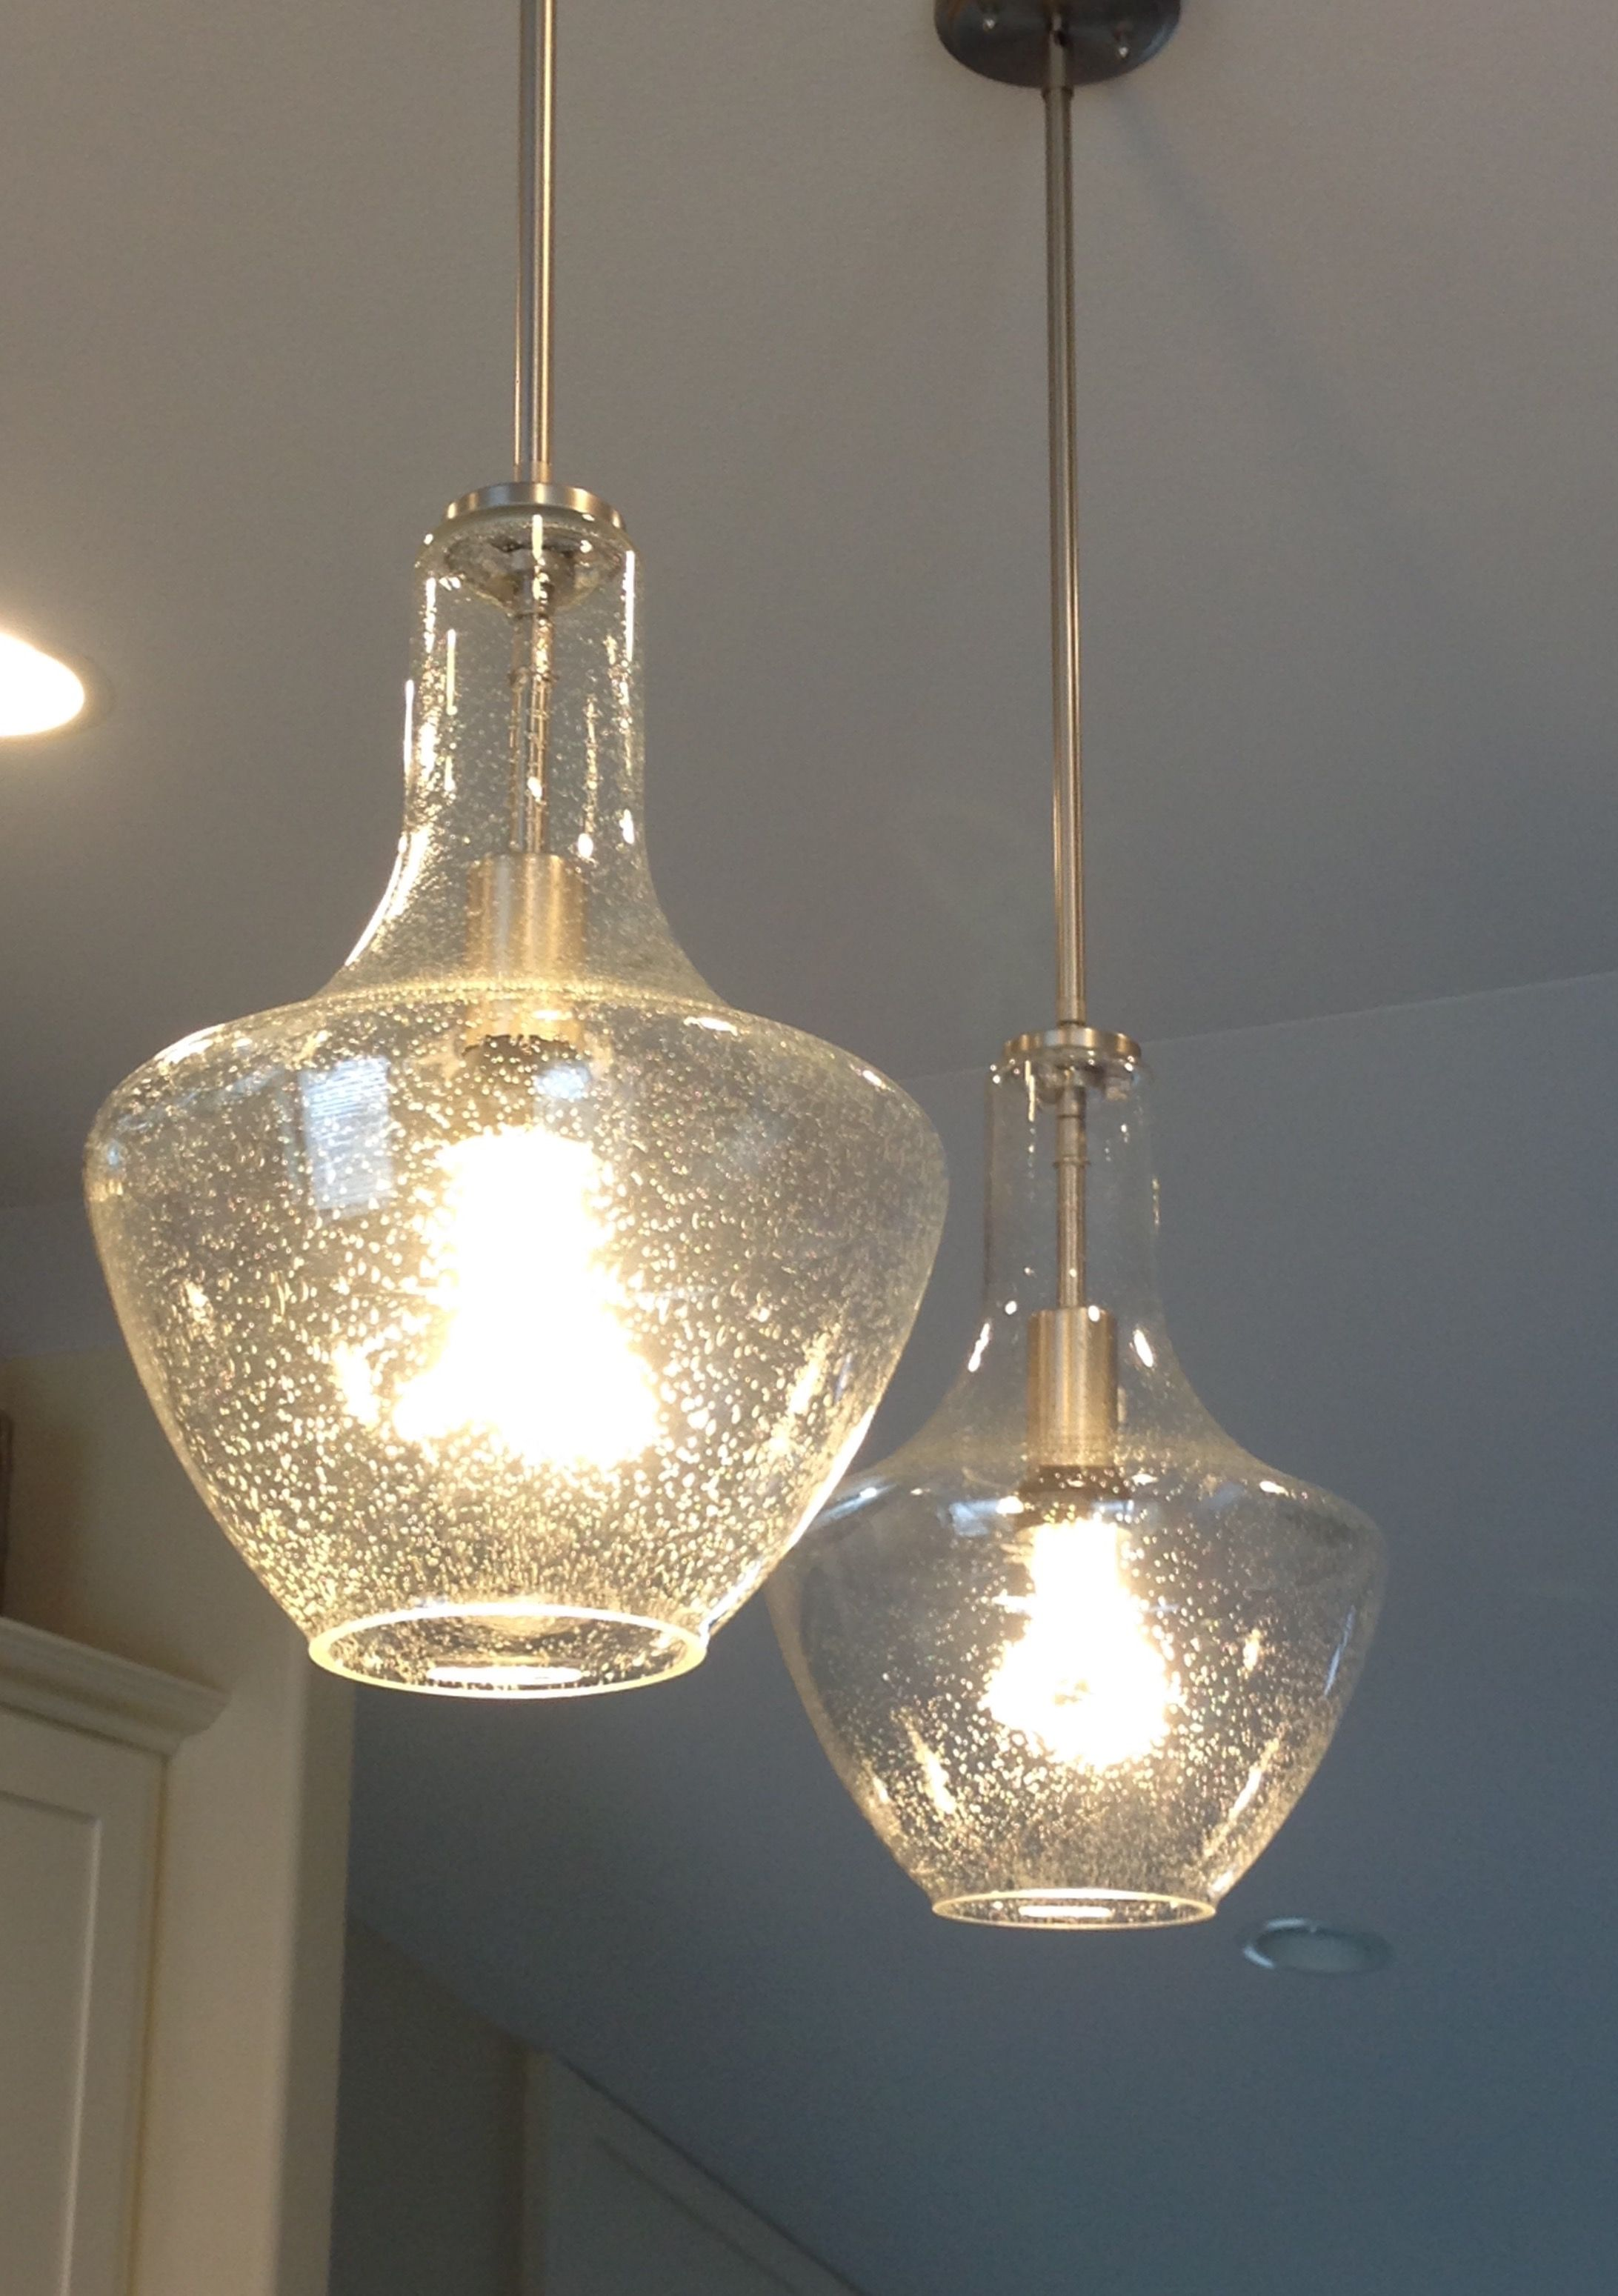 Kichler Seeded Gl Pendant Lights